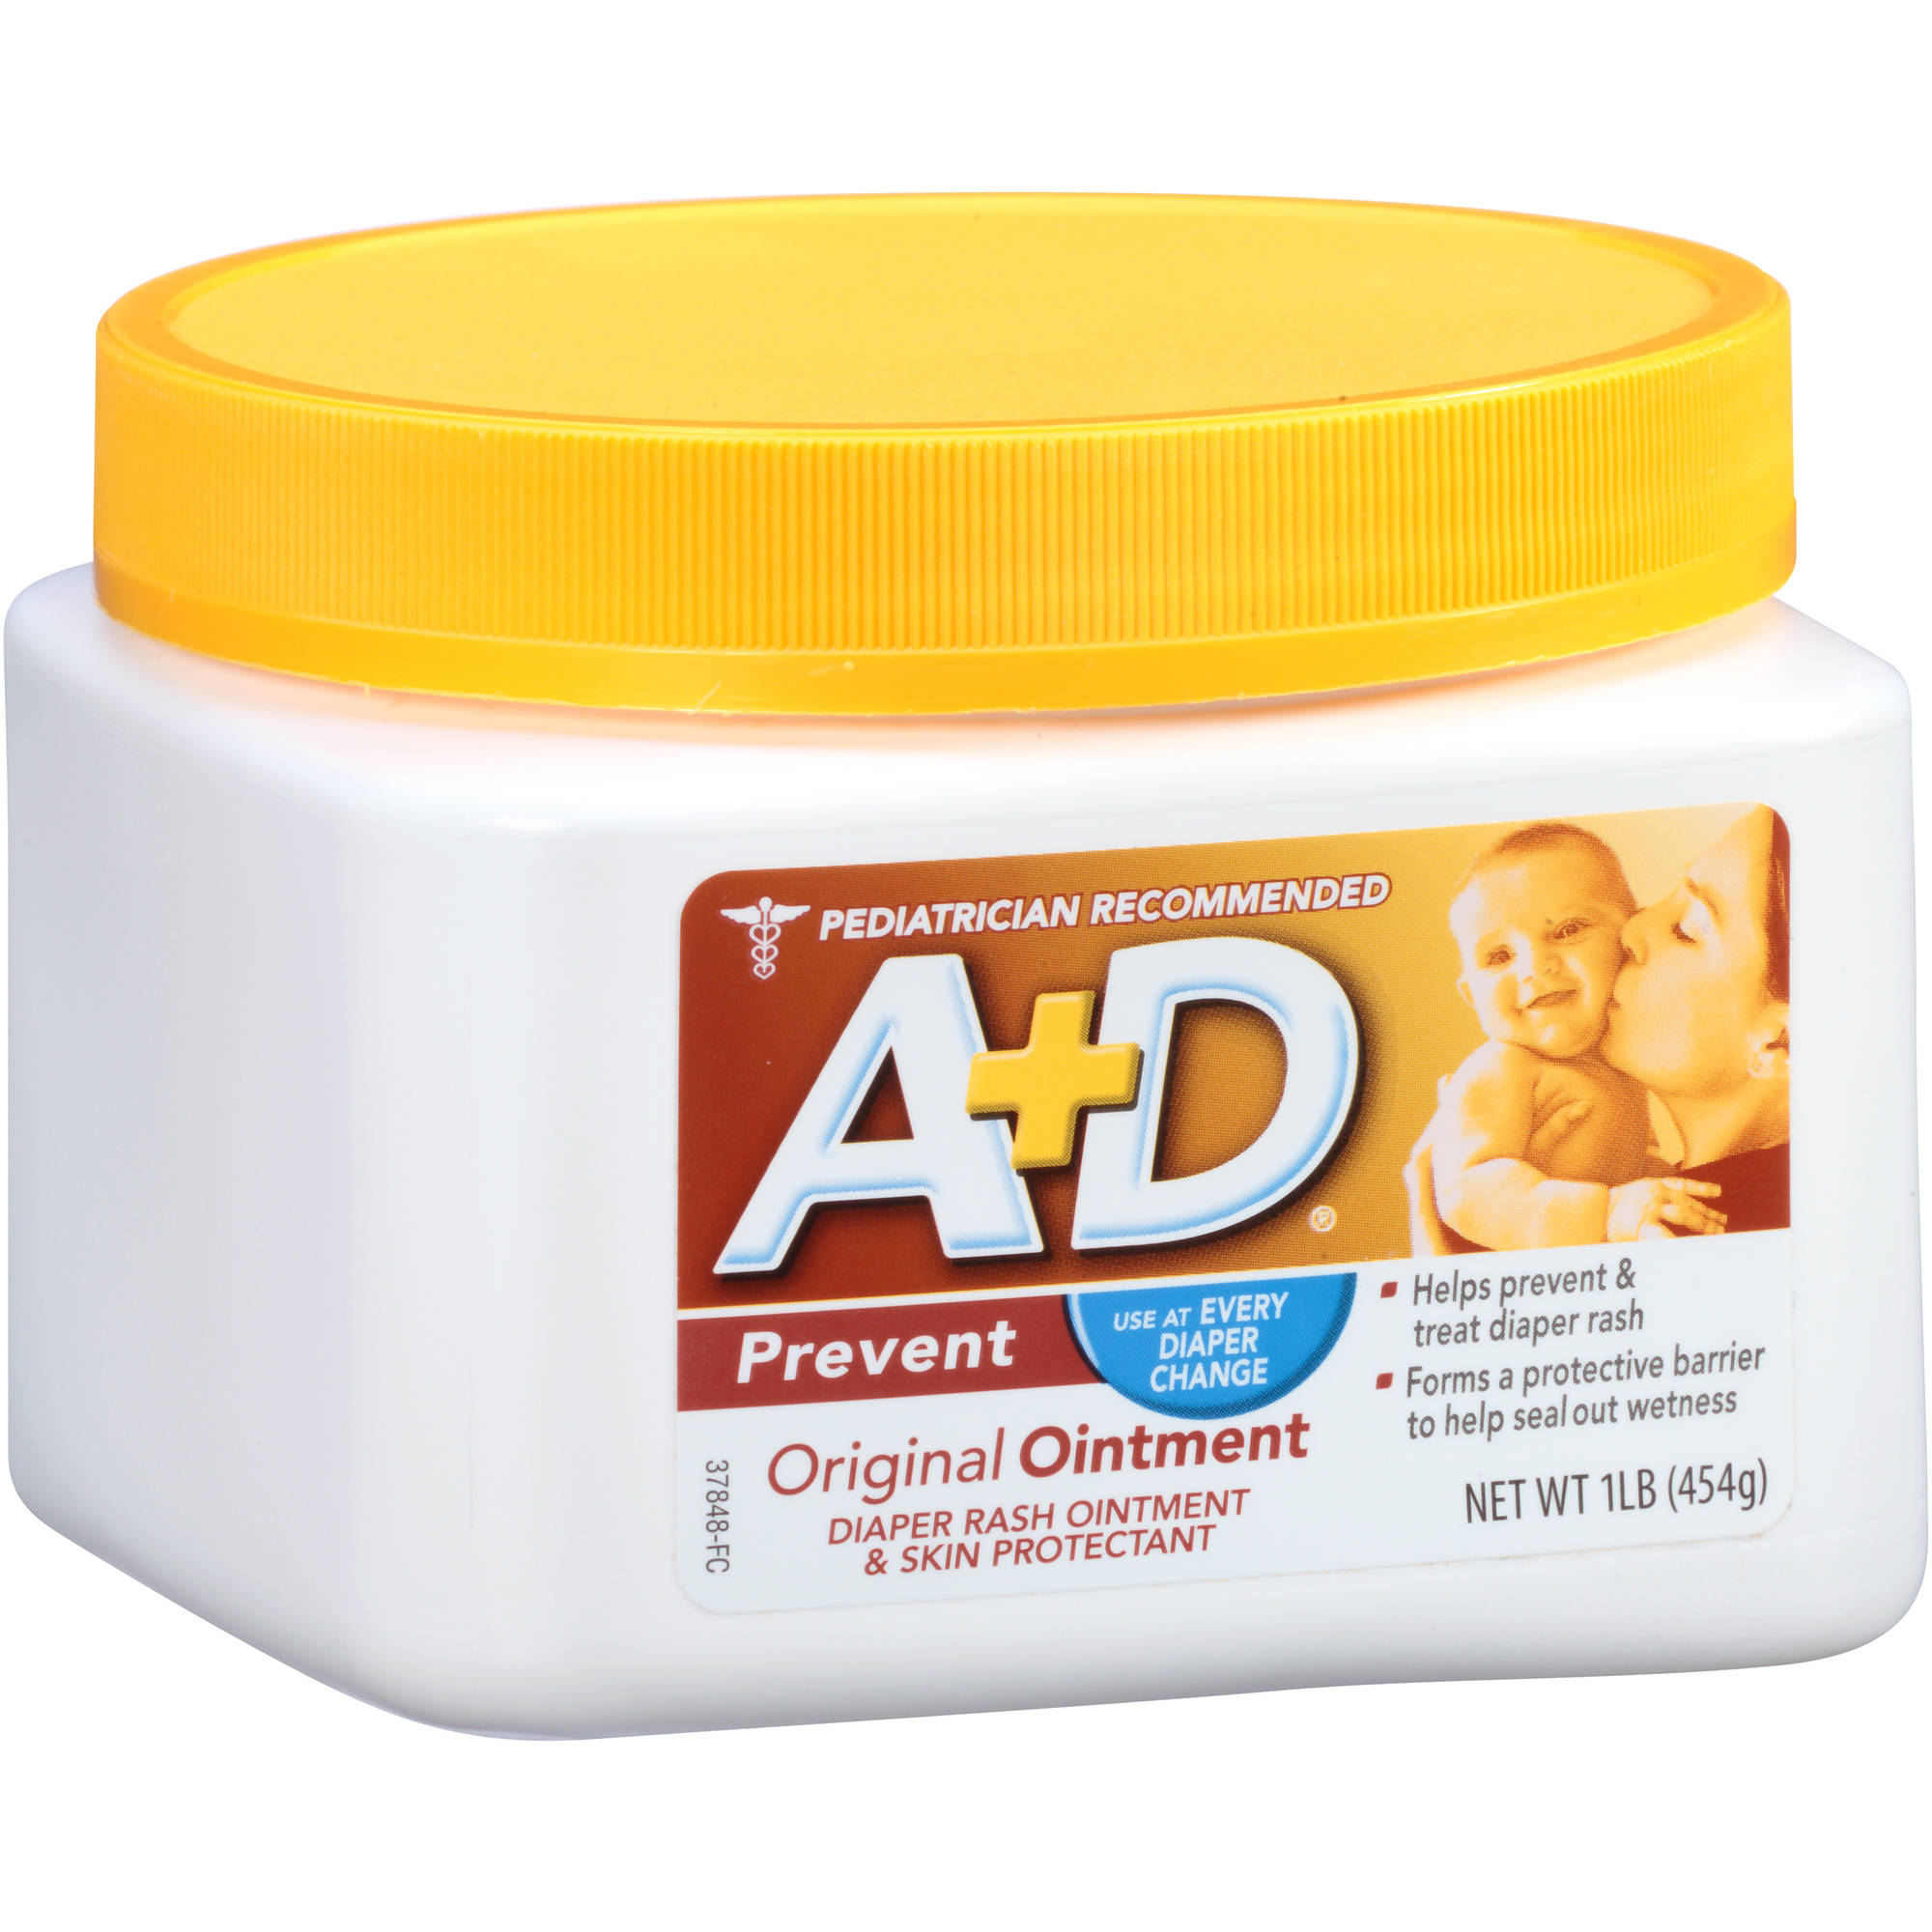 MSD Consumer Care A+D  Diaper Rash Ointment & Skin Protectant, 1 lb